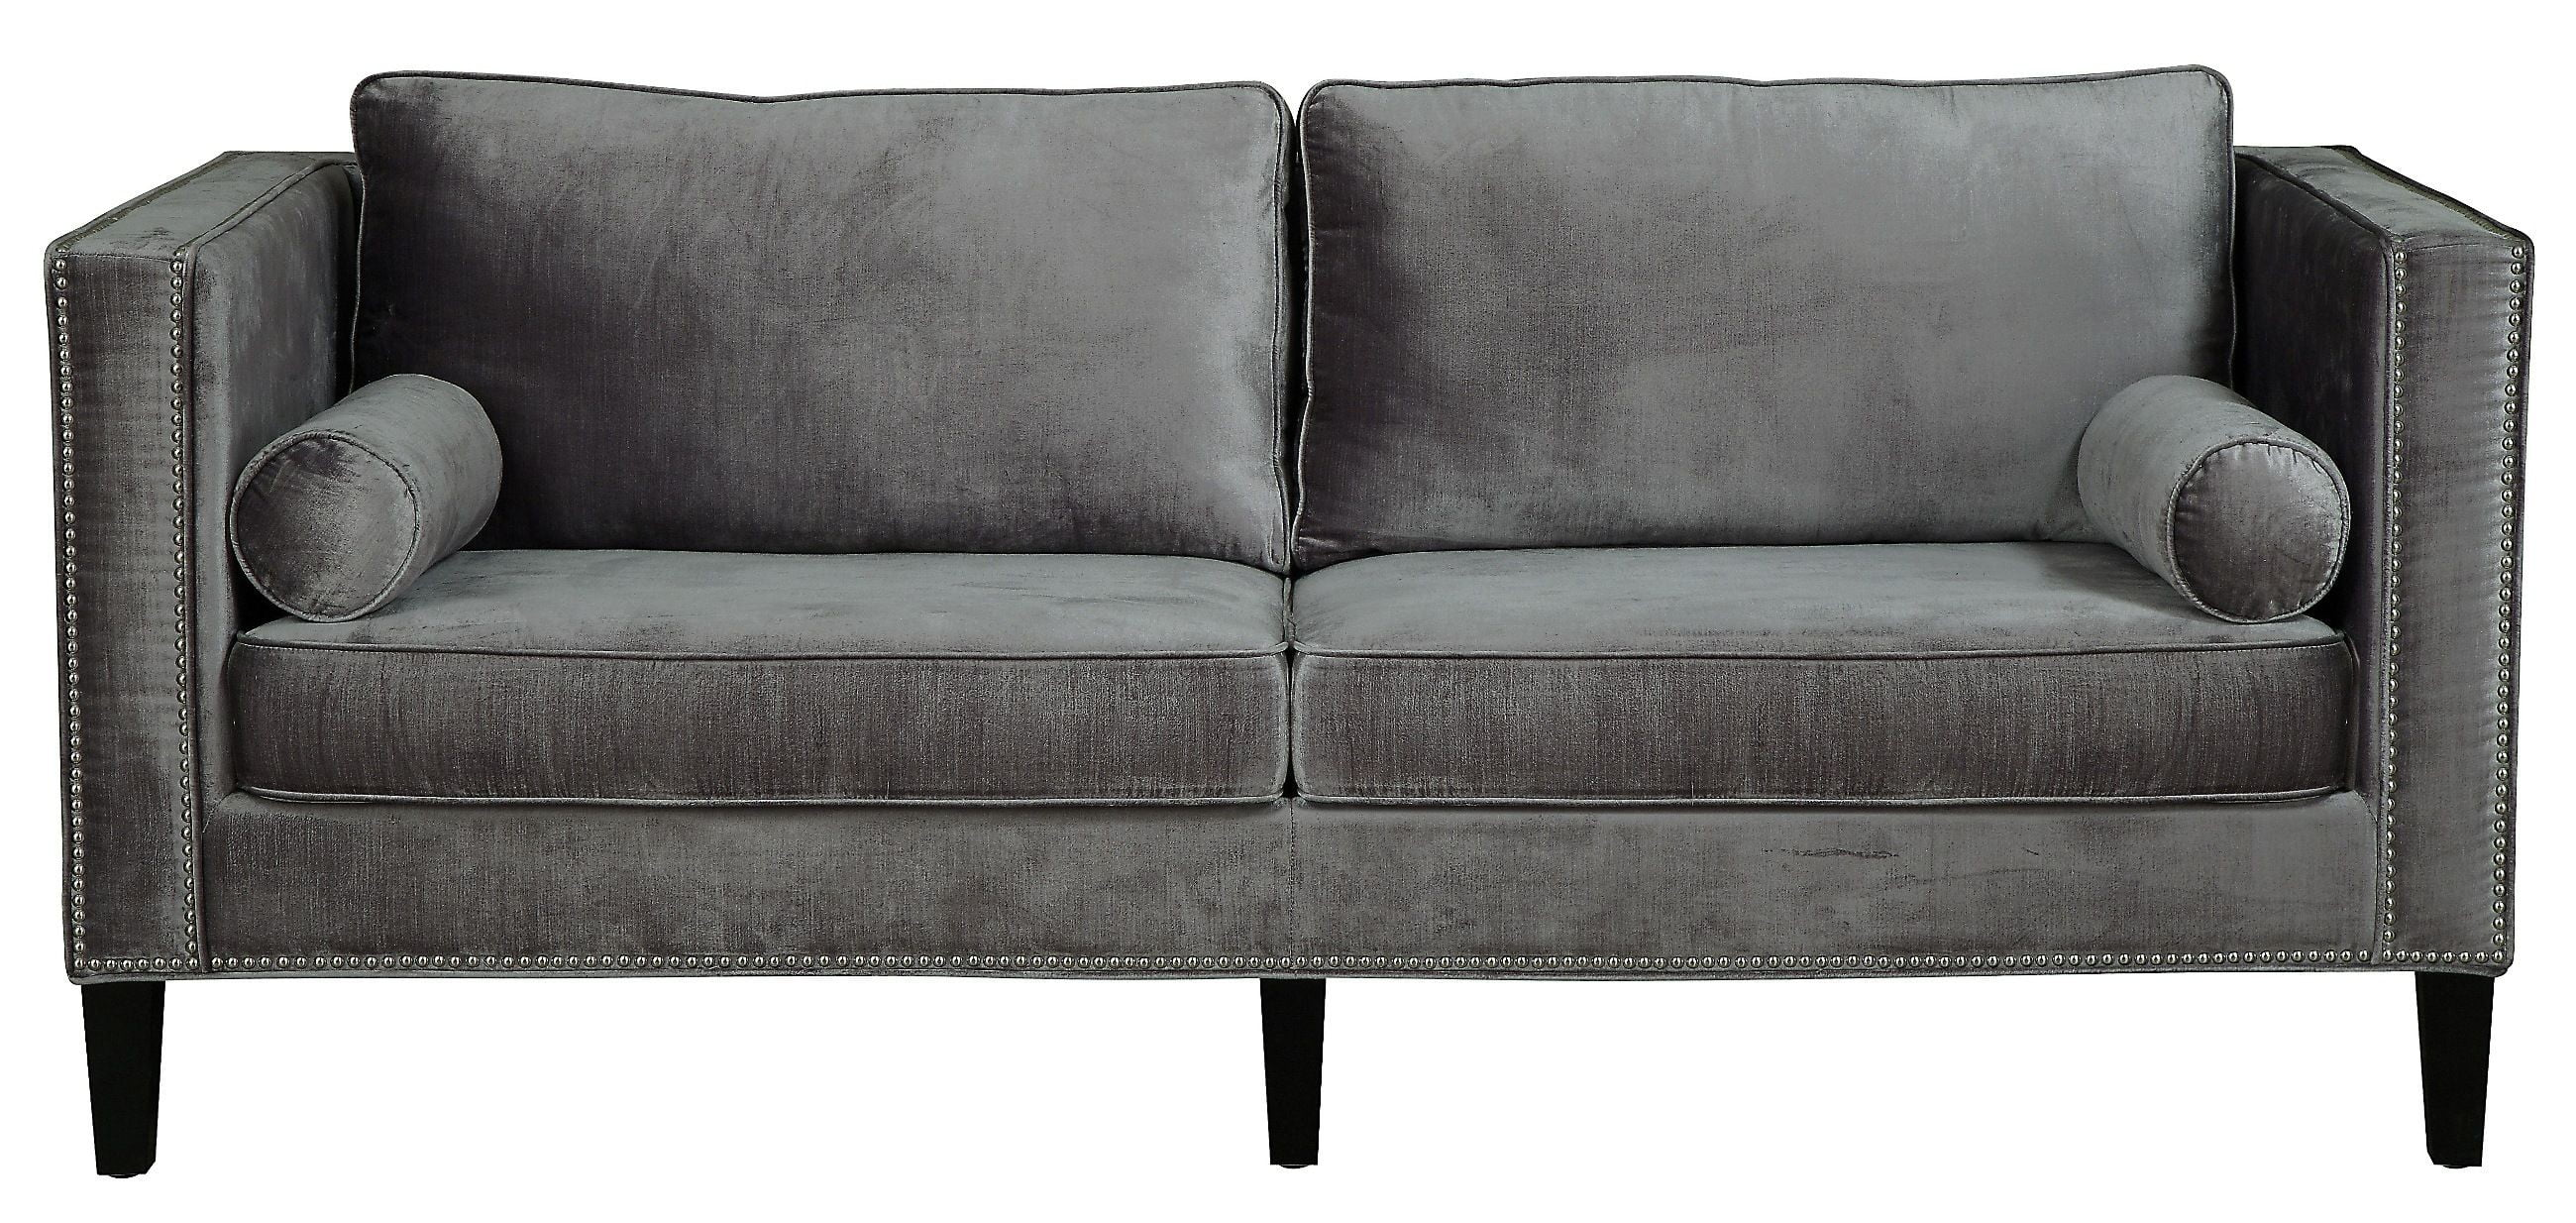 Cooper Grey Velvet Sofa from TOV S29